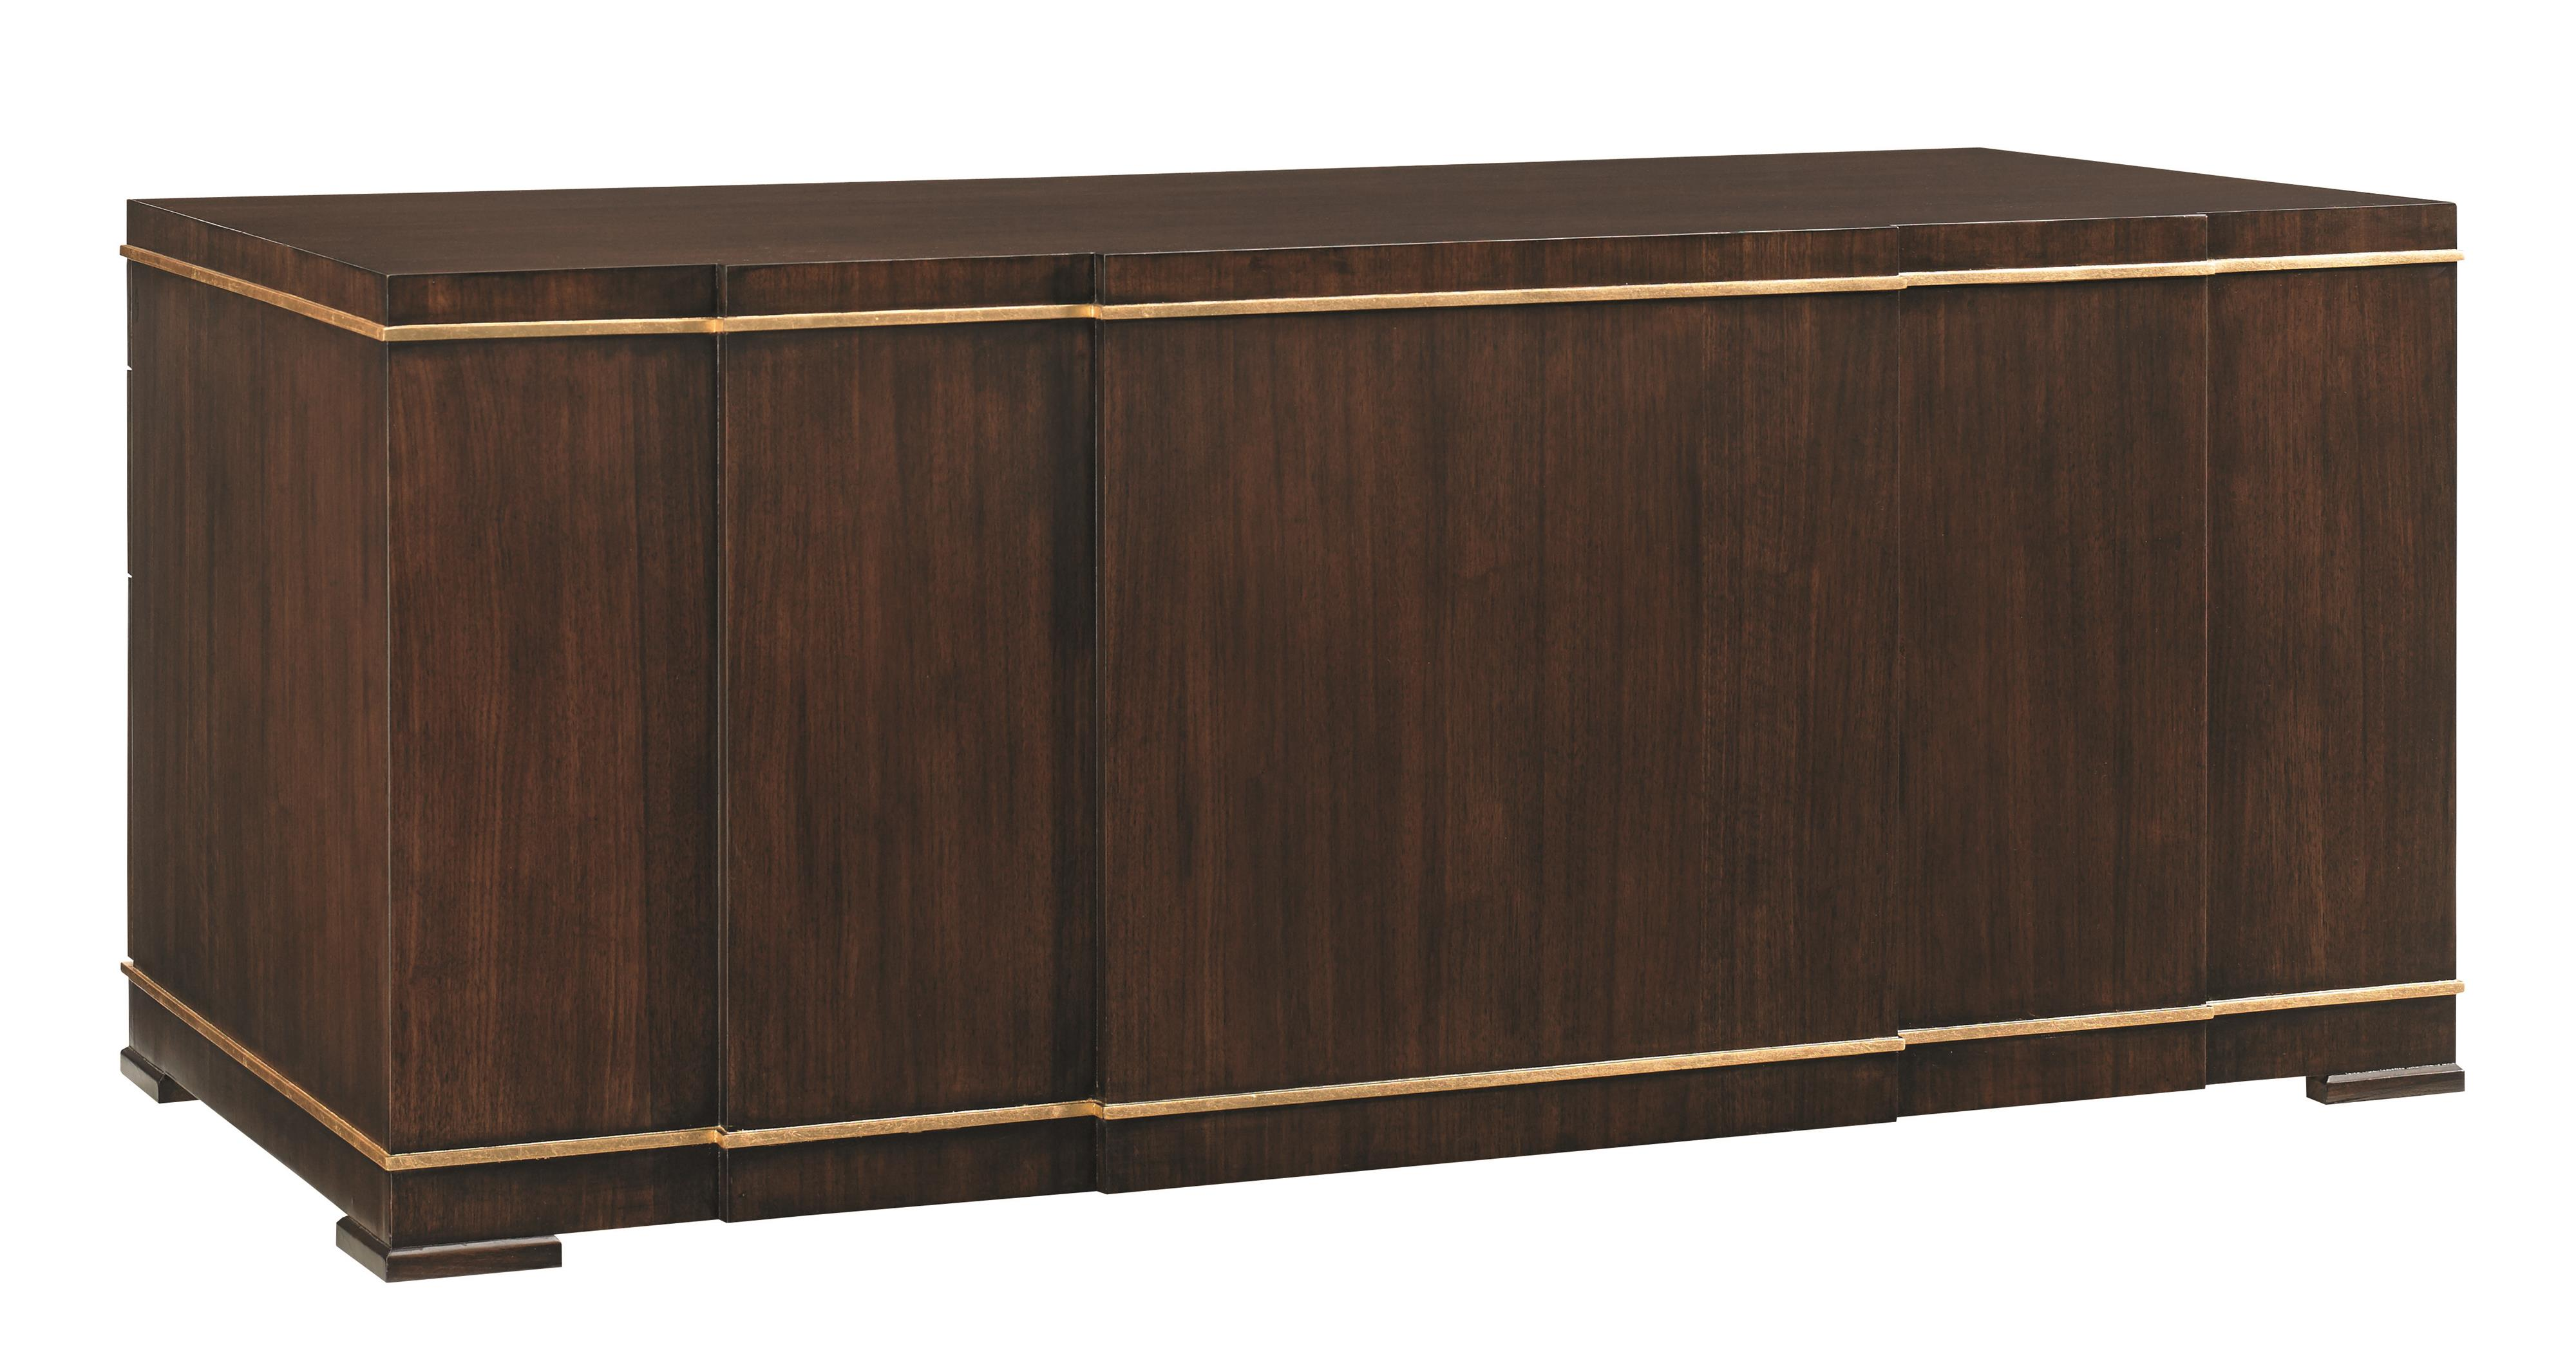 Bel Aire Paramount Executive Desk by Sligh at Baer's Furniture